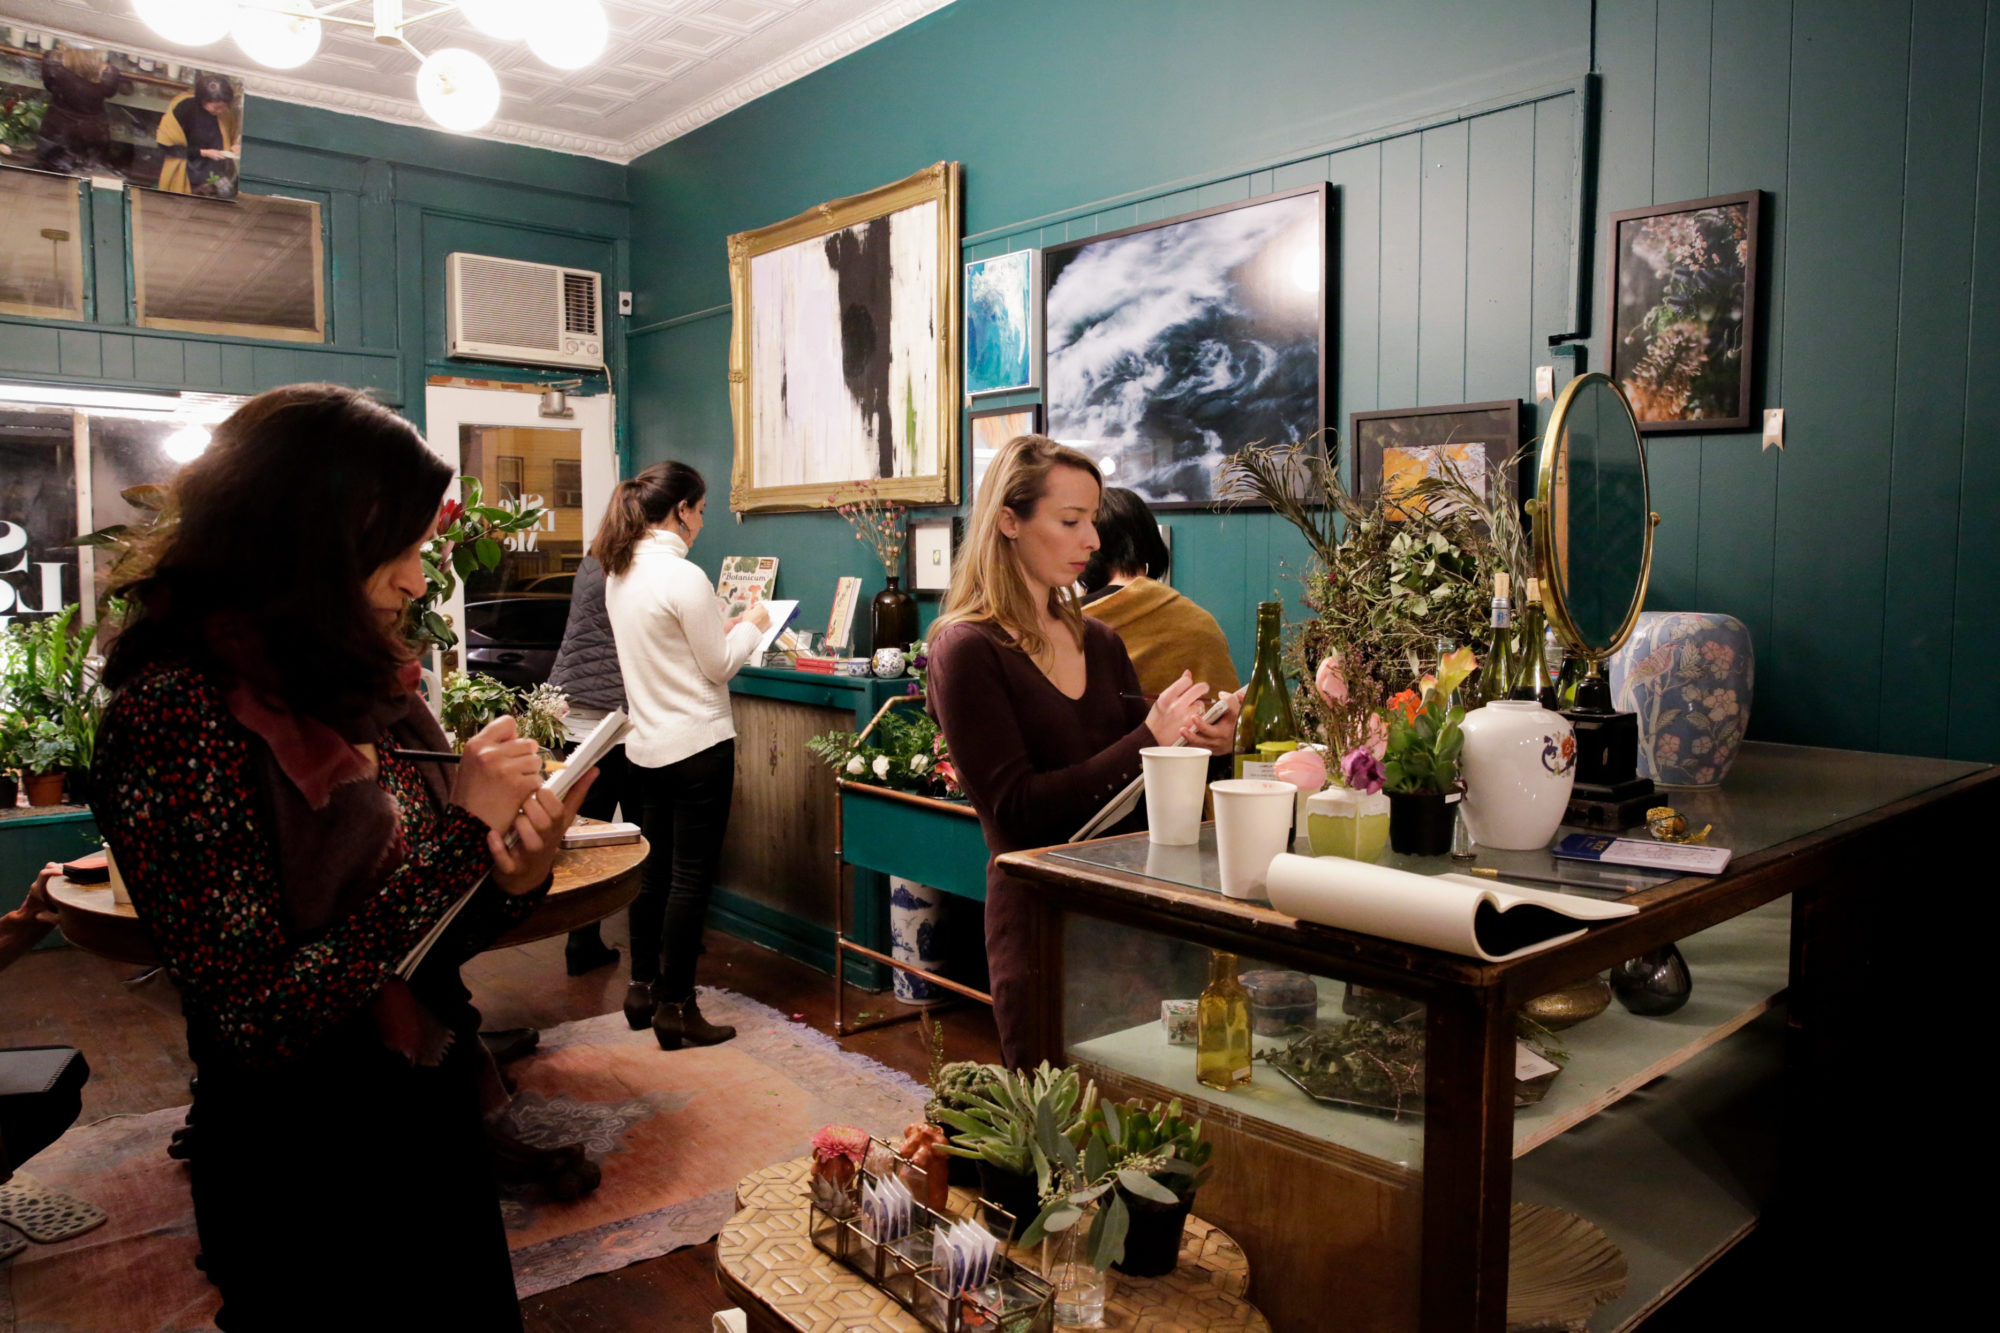 Participants in the Lemon Collective's  Drawing Night work on sketching flowers at She Loves Me, a flower shop that the collective collaborates with frequently.